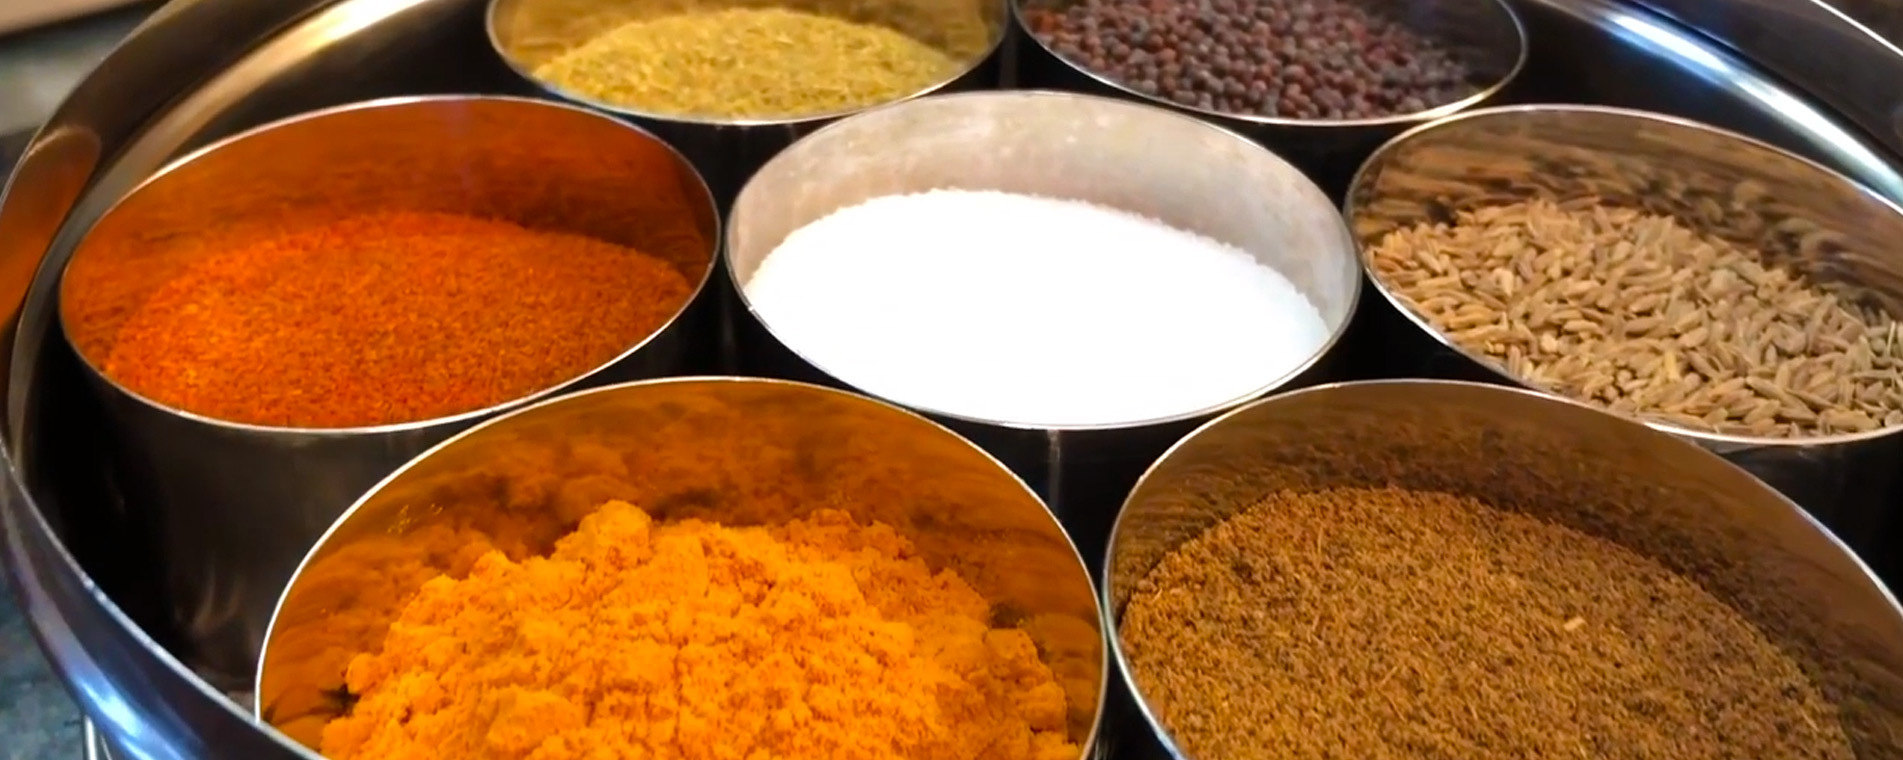 Read more about Spices